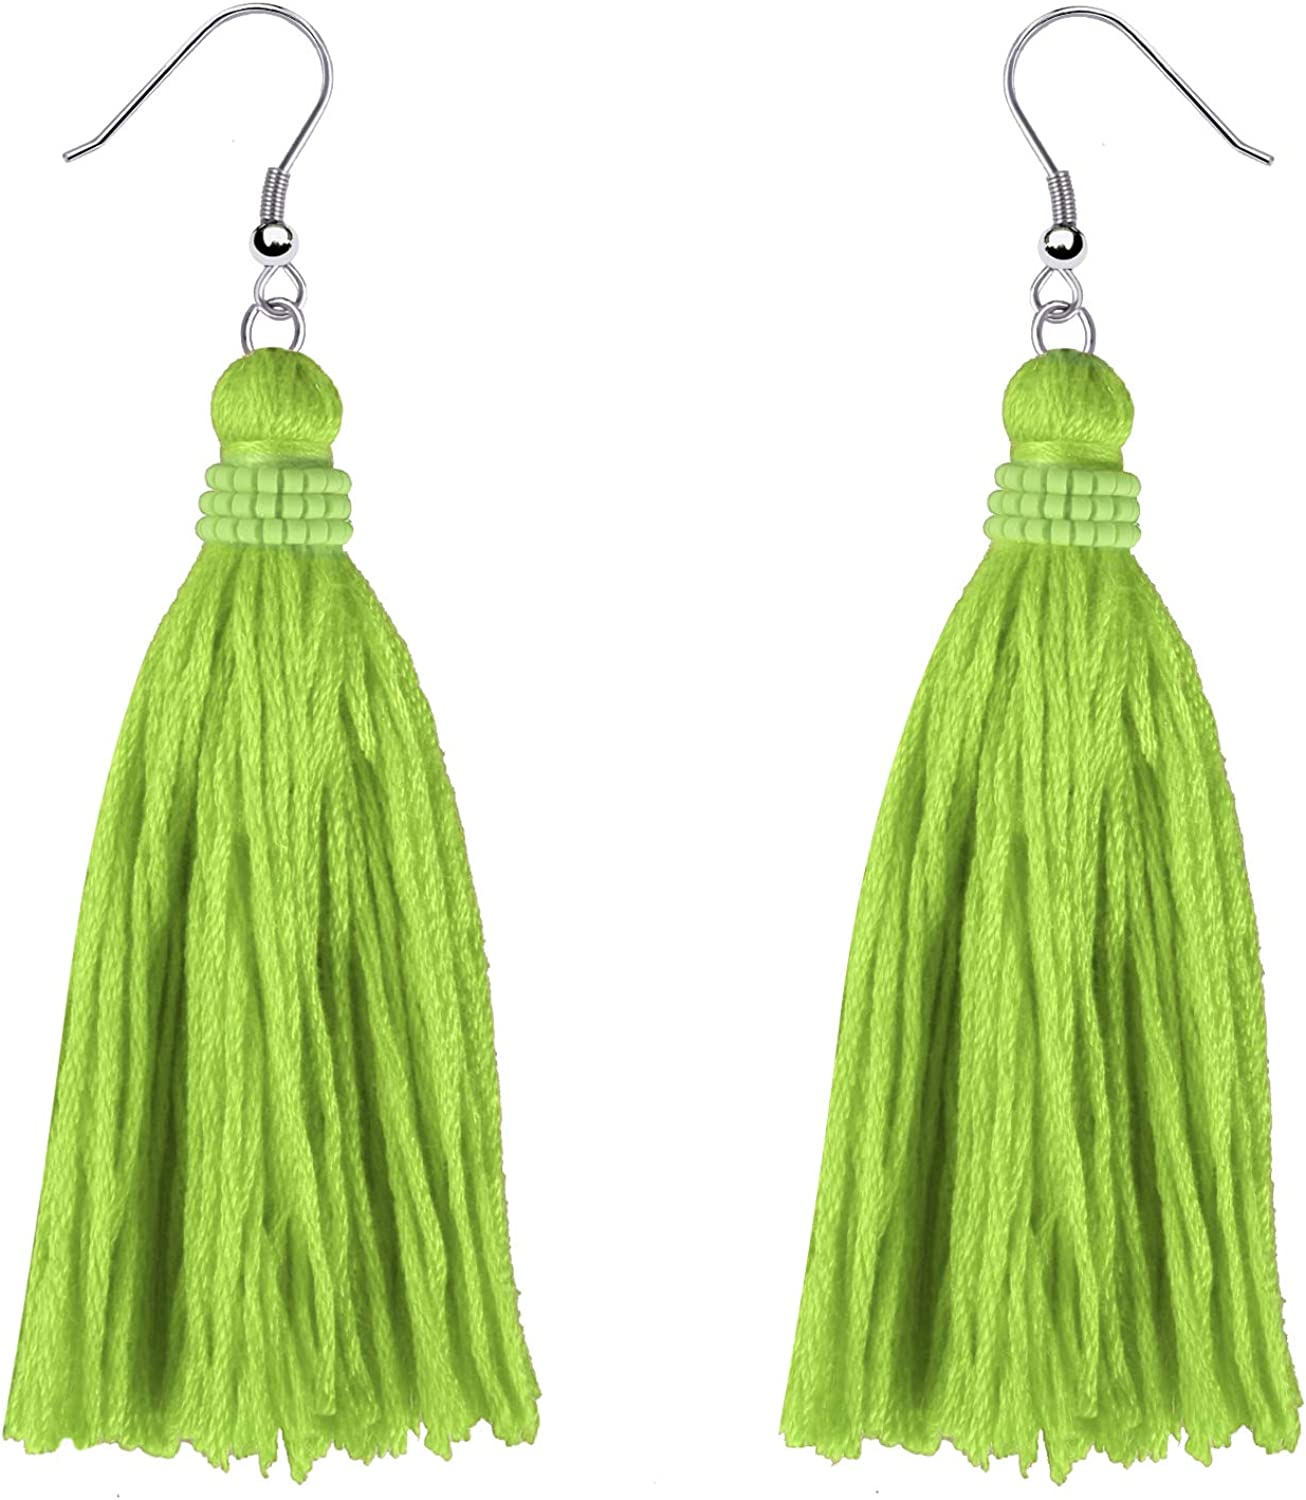 KELITCH Tassel Earrings Bohemian Tiered Thread Tassel Dangle Earring for Women Girls